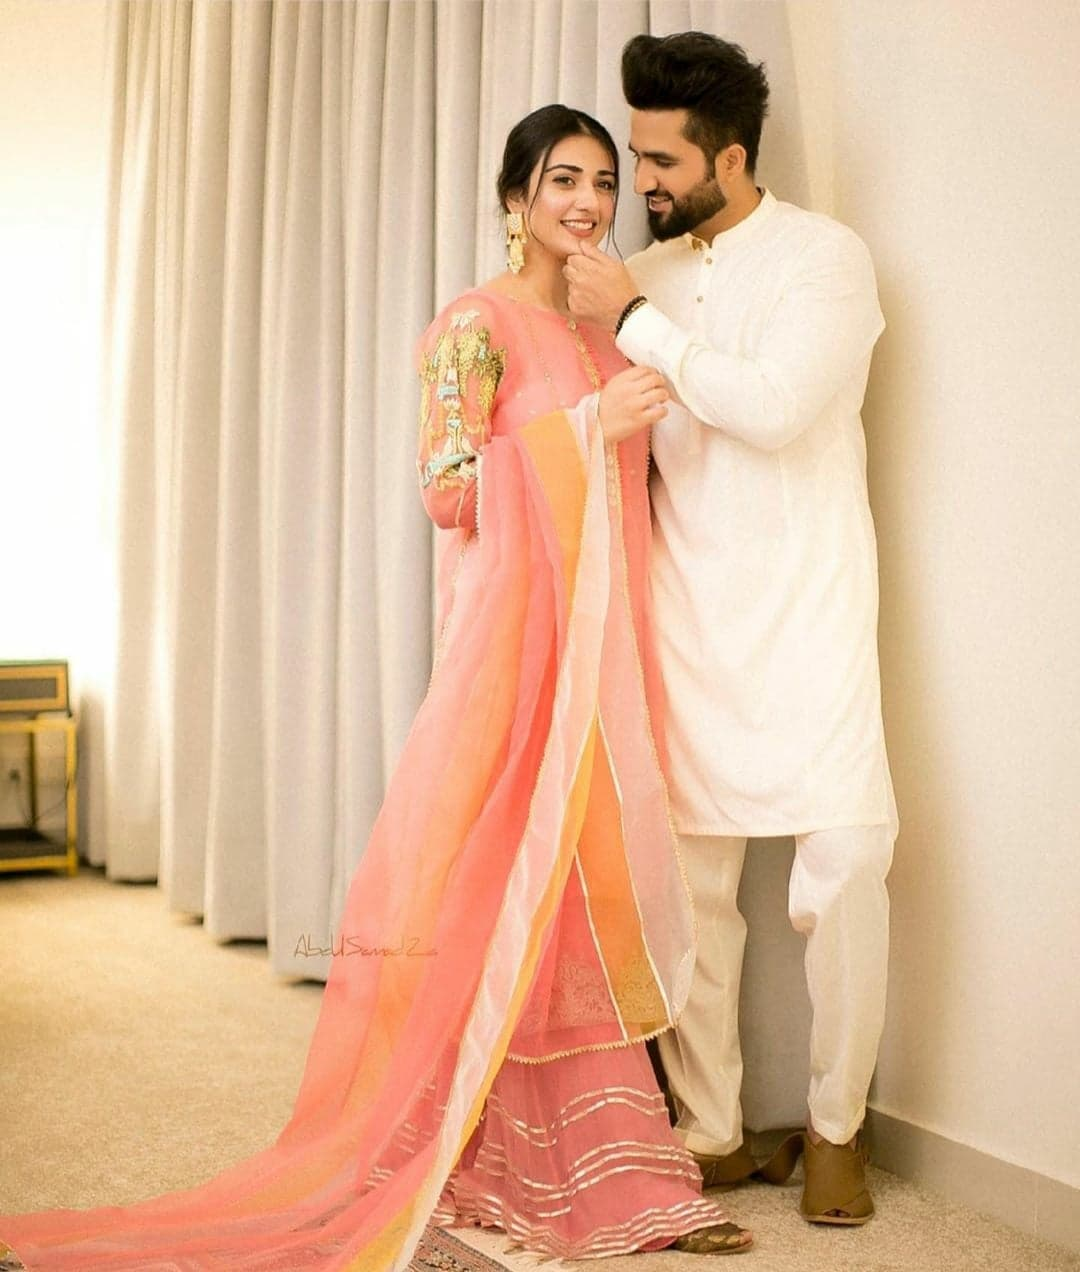 Cute Pictures of Newly Wedded Celebrity Couples